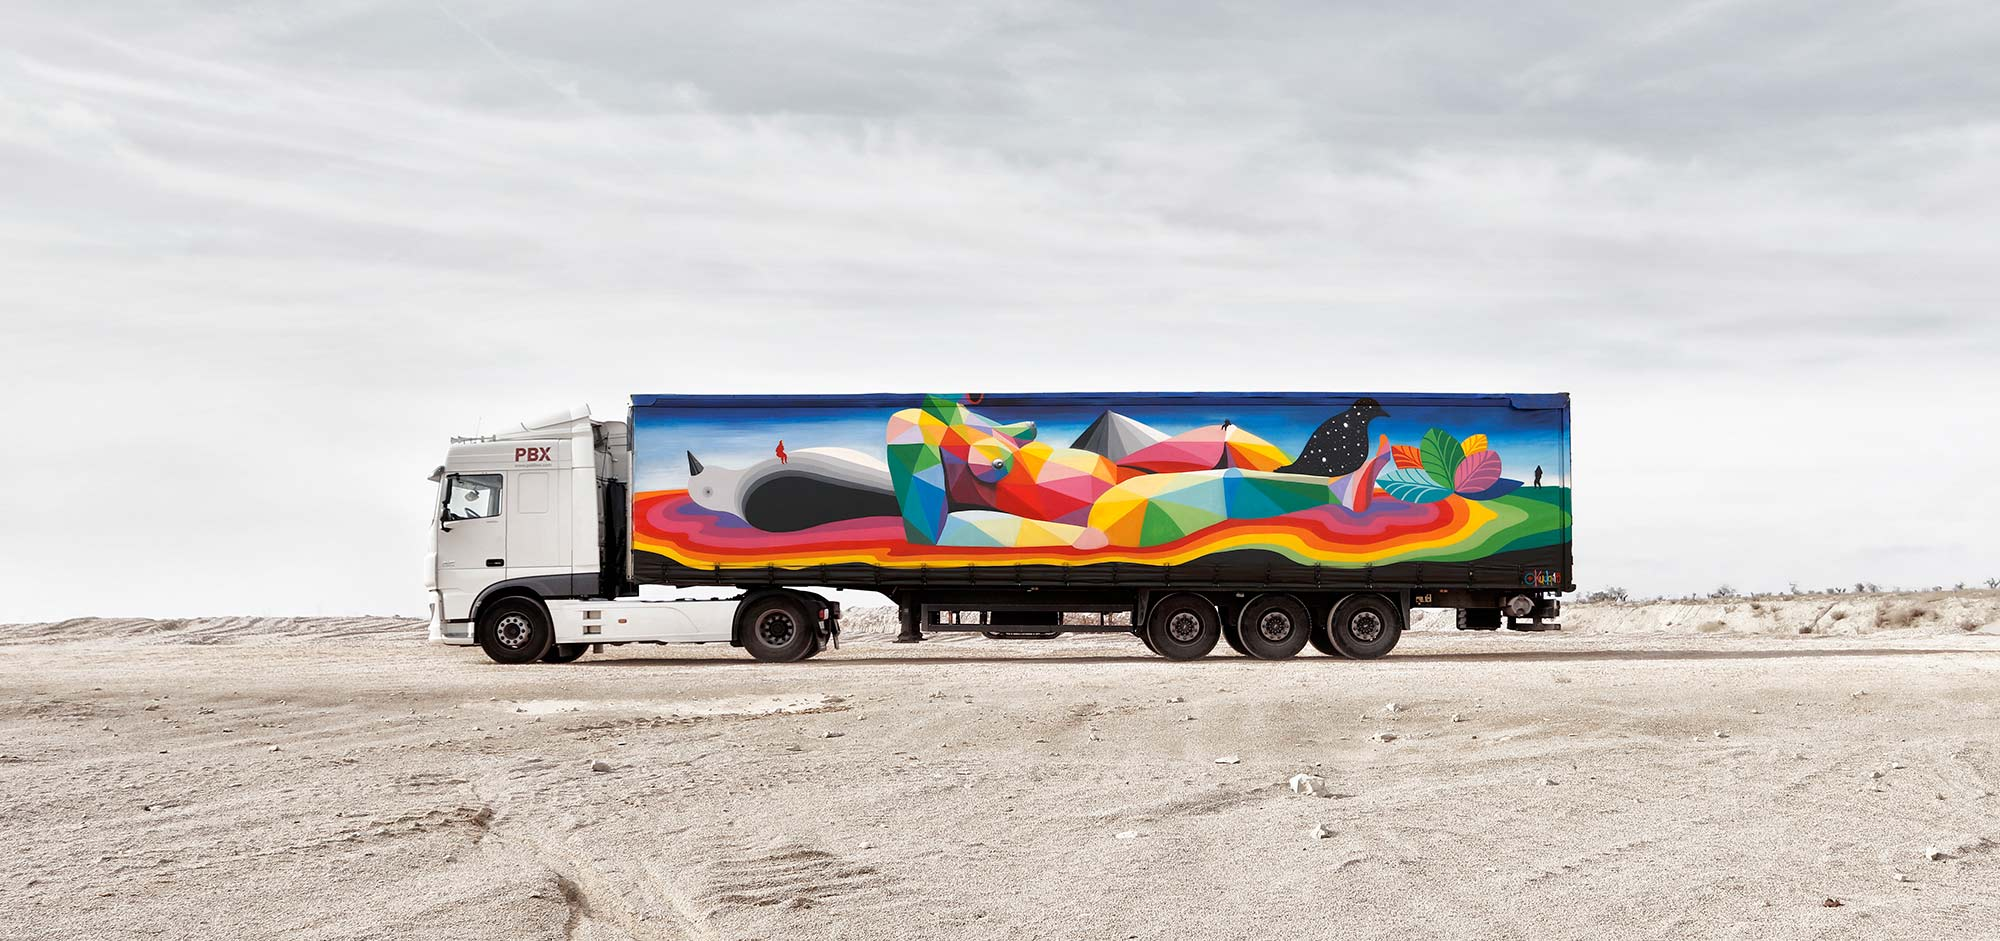 Truck Art Project: Art that Moves You